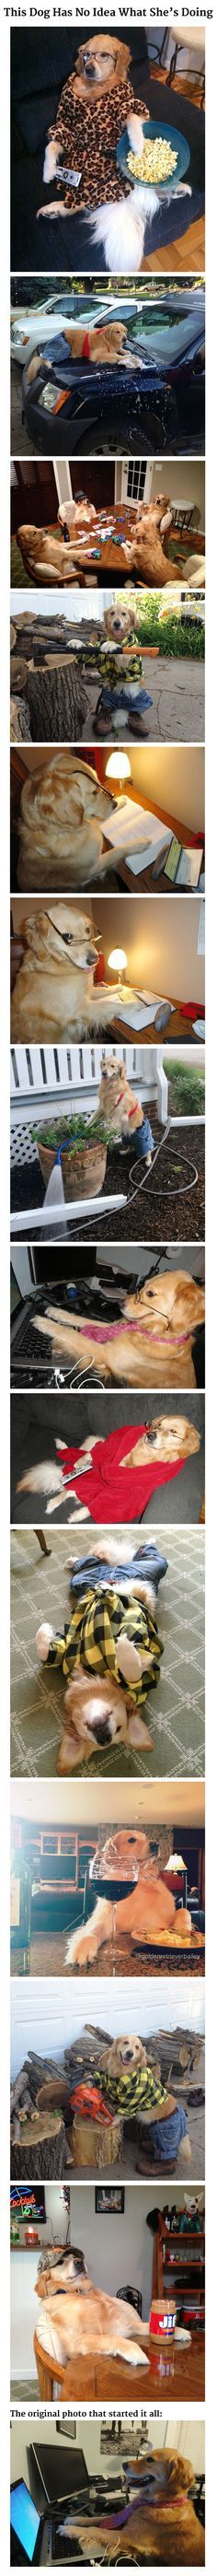 "This Dog Has No Idea What She's Doing. Remember that funny picture of a beautiful golden retriever seated at a computer with the caption ""I have no idea what I'm doing?"" Her owner has come forward with more hilarious photos of her dog doing human things and being totally confused. Follow her https://www.facebook.com/disobailey http://instagram.com/goldenretrieverbailey http://imgur.com/gallery/WlgnC"